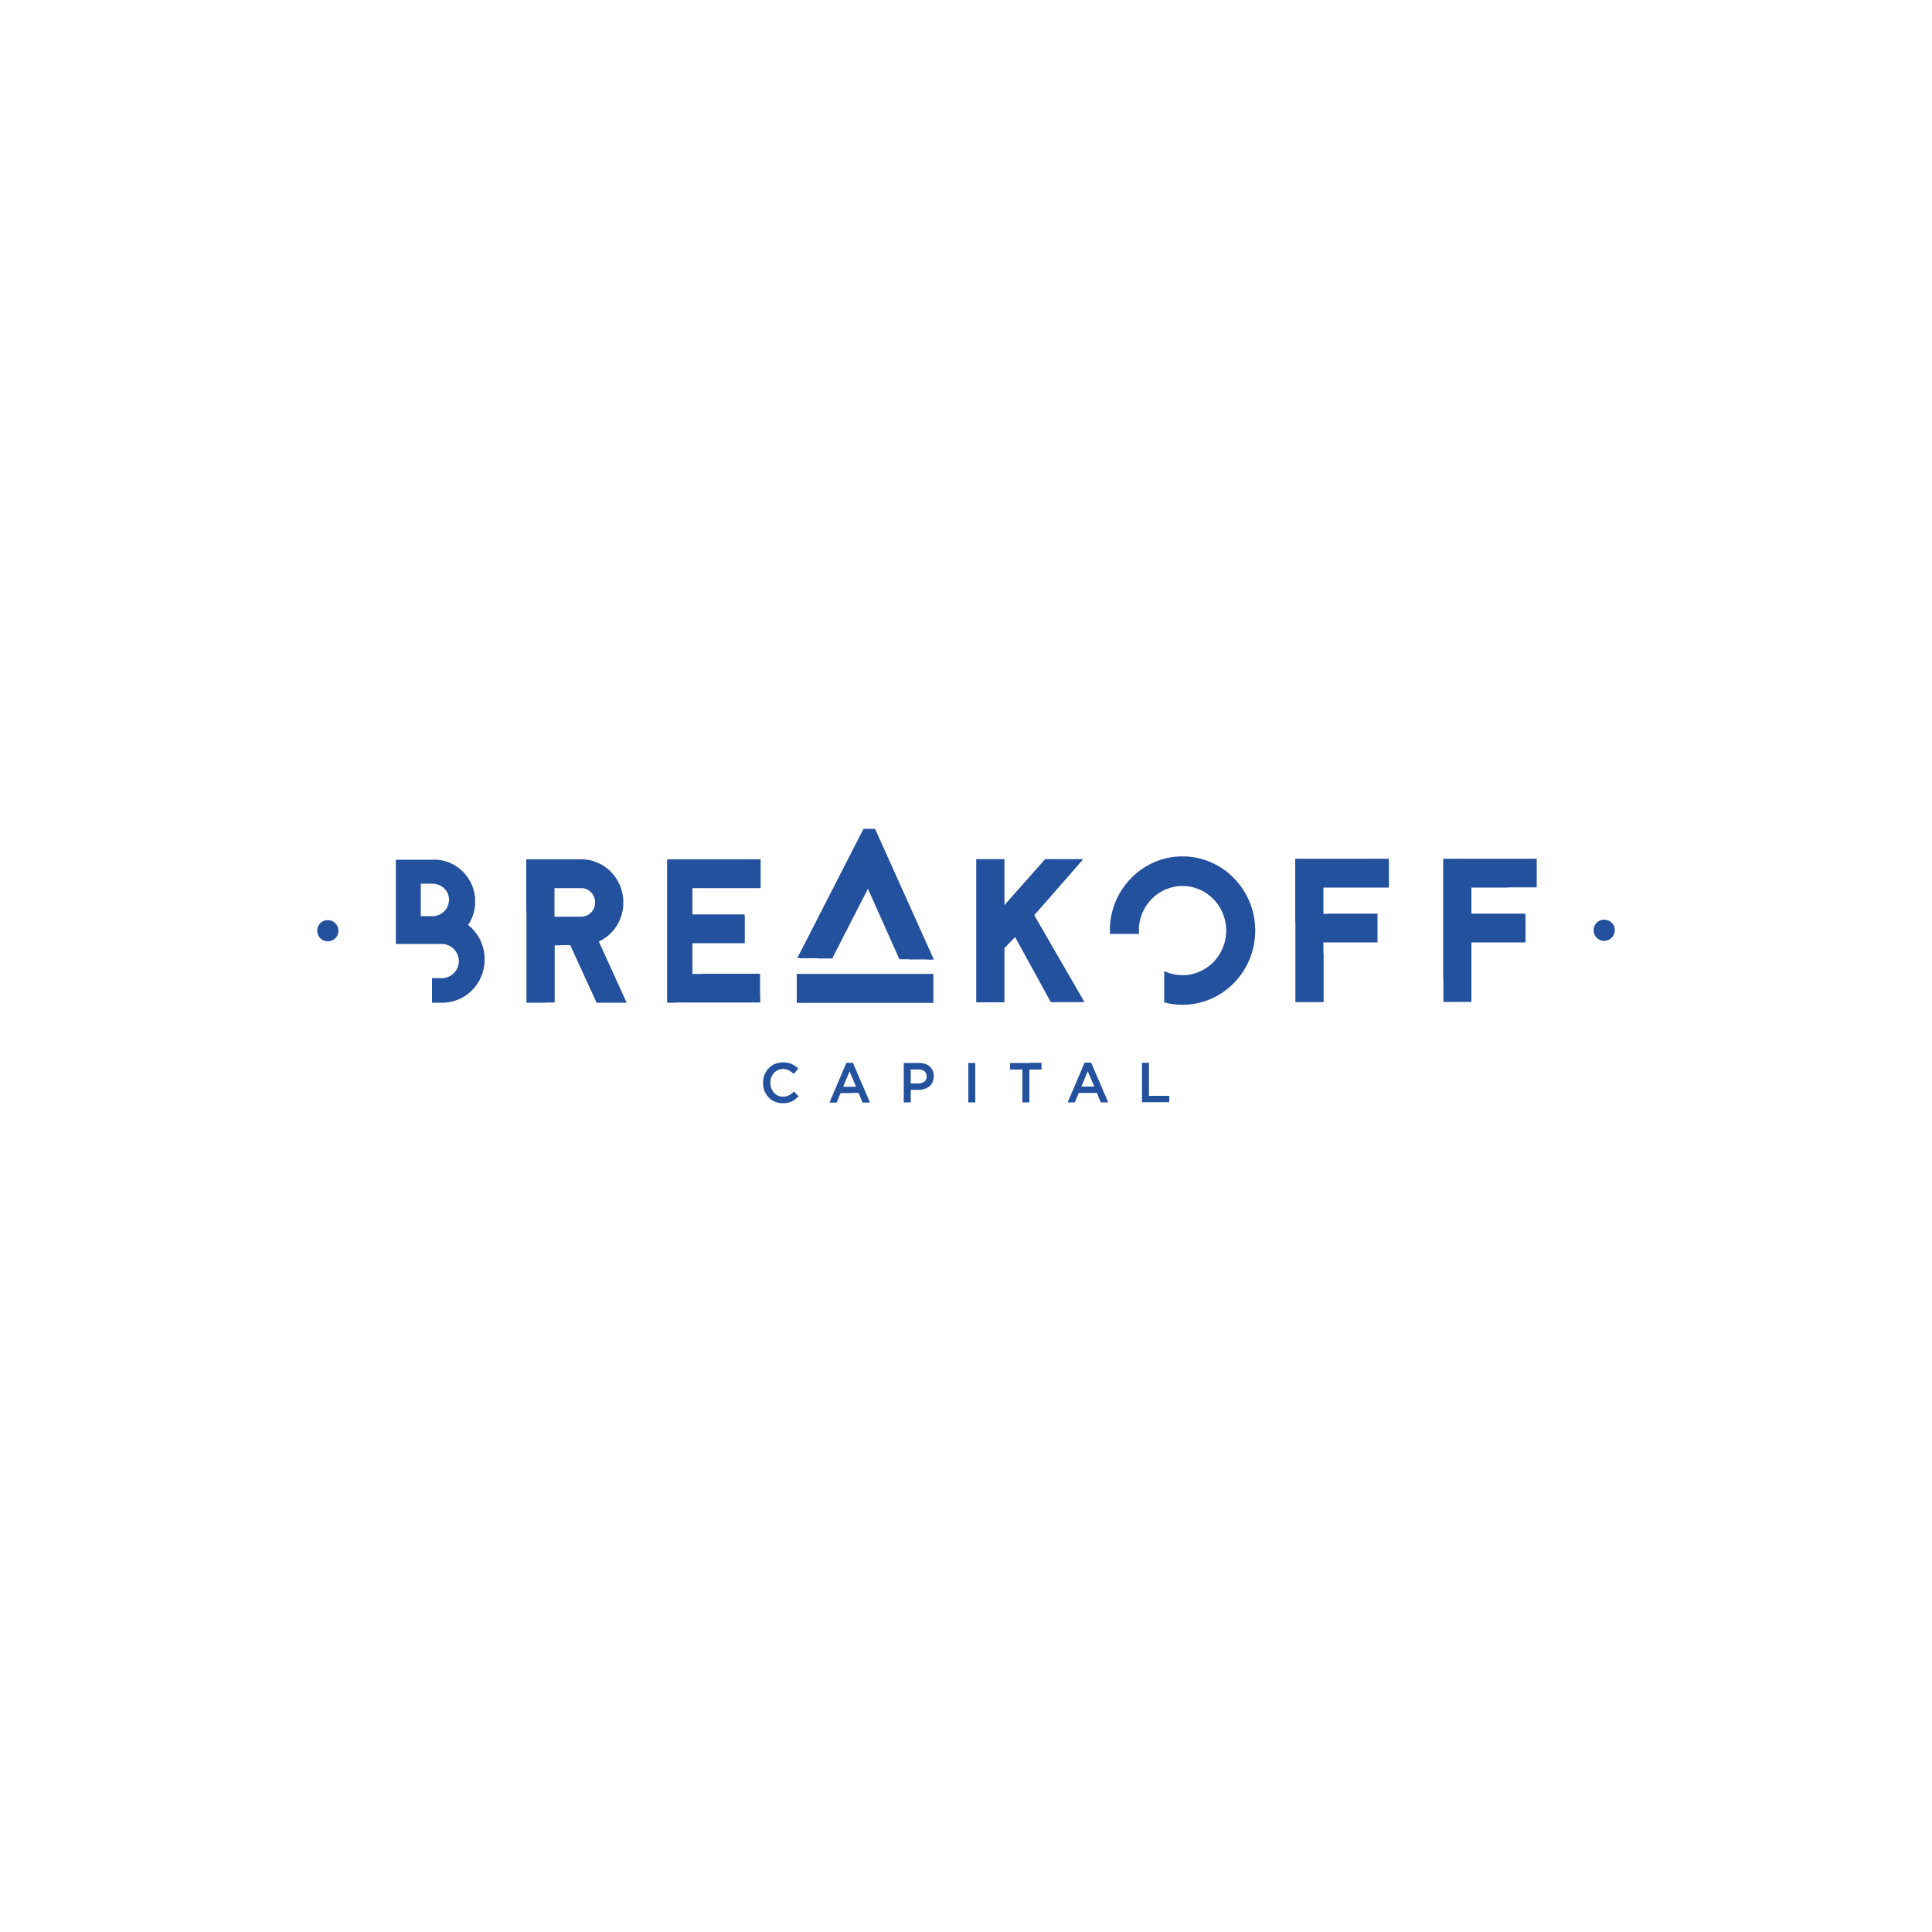 Break-Off Capital